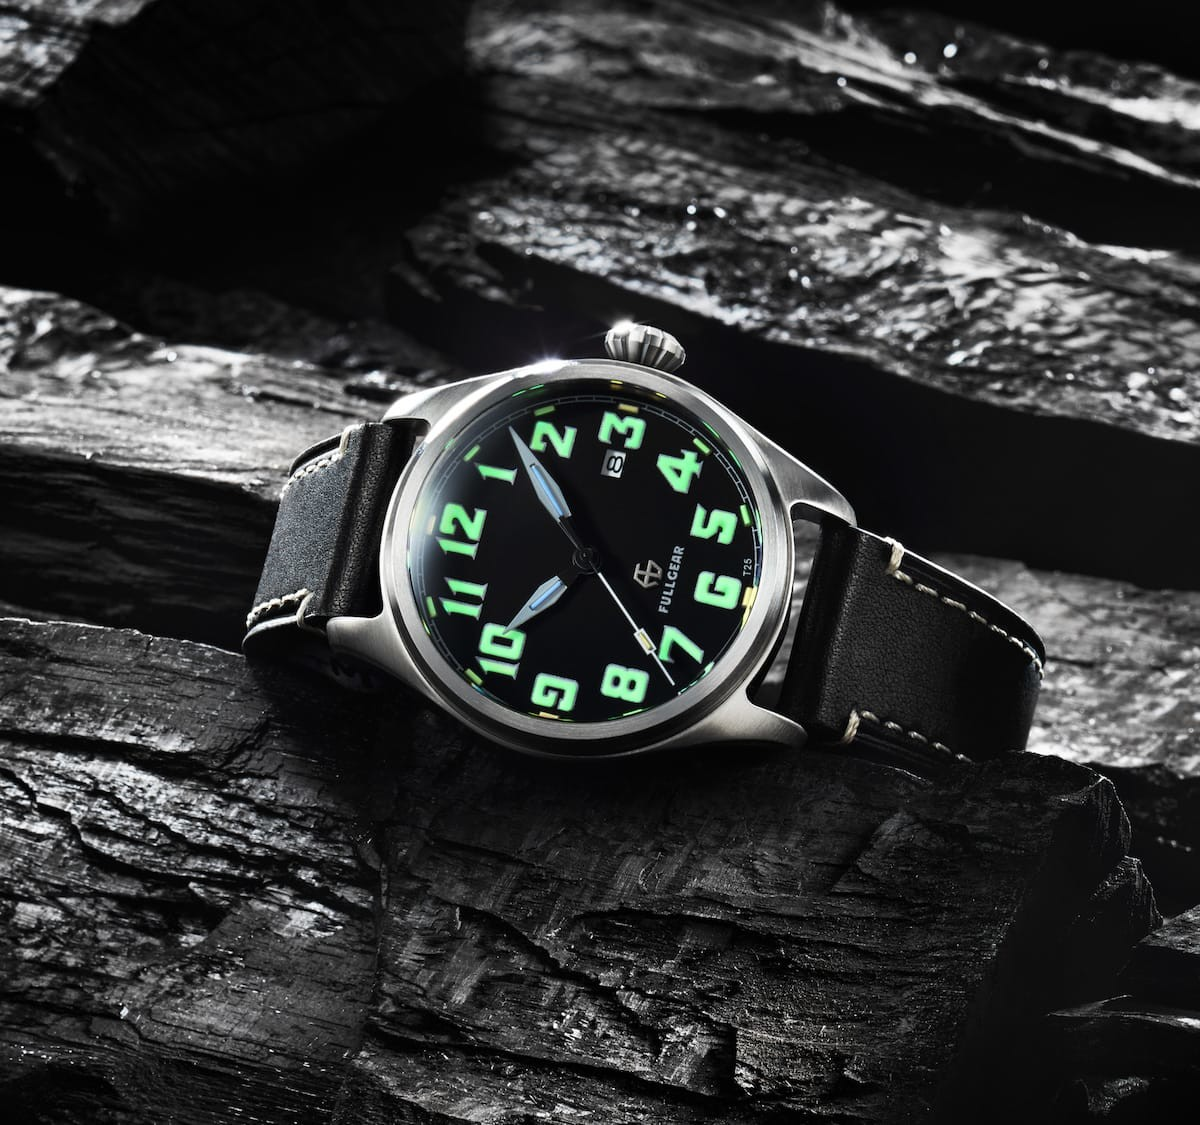 FullGear customizable tritium watch lets you forge an all-the-time glowing timepiece